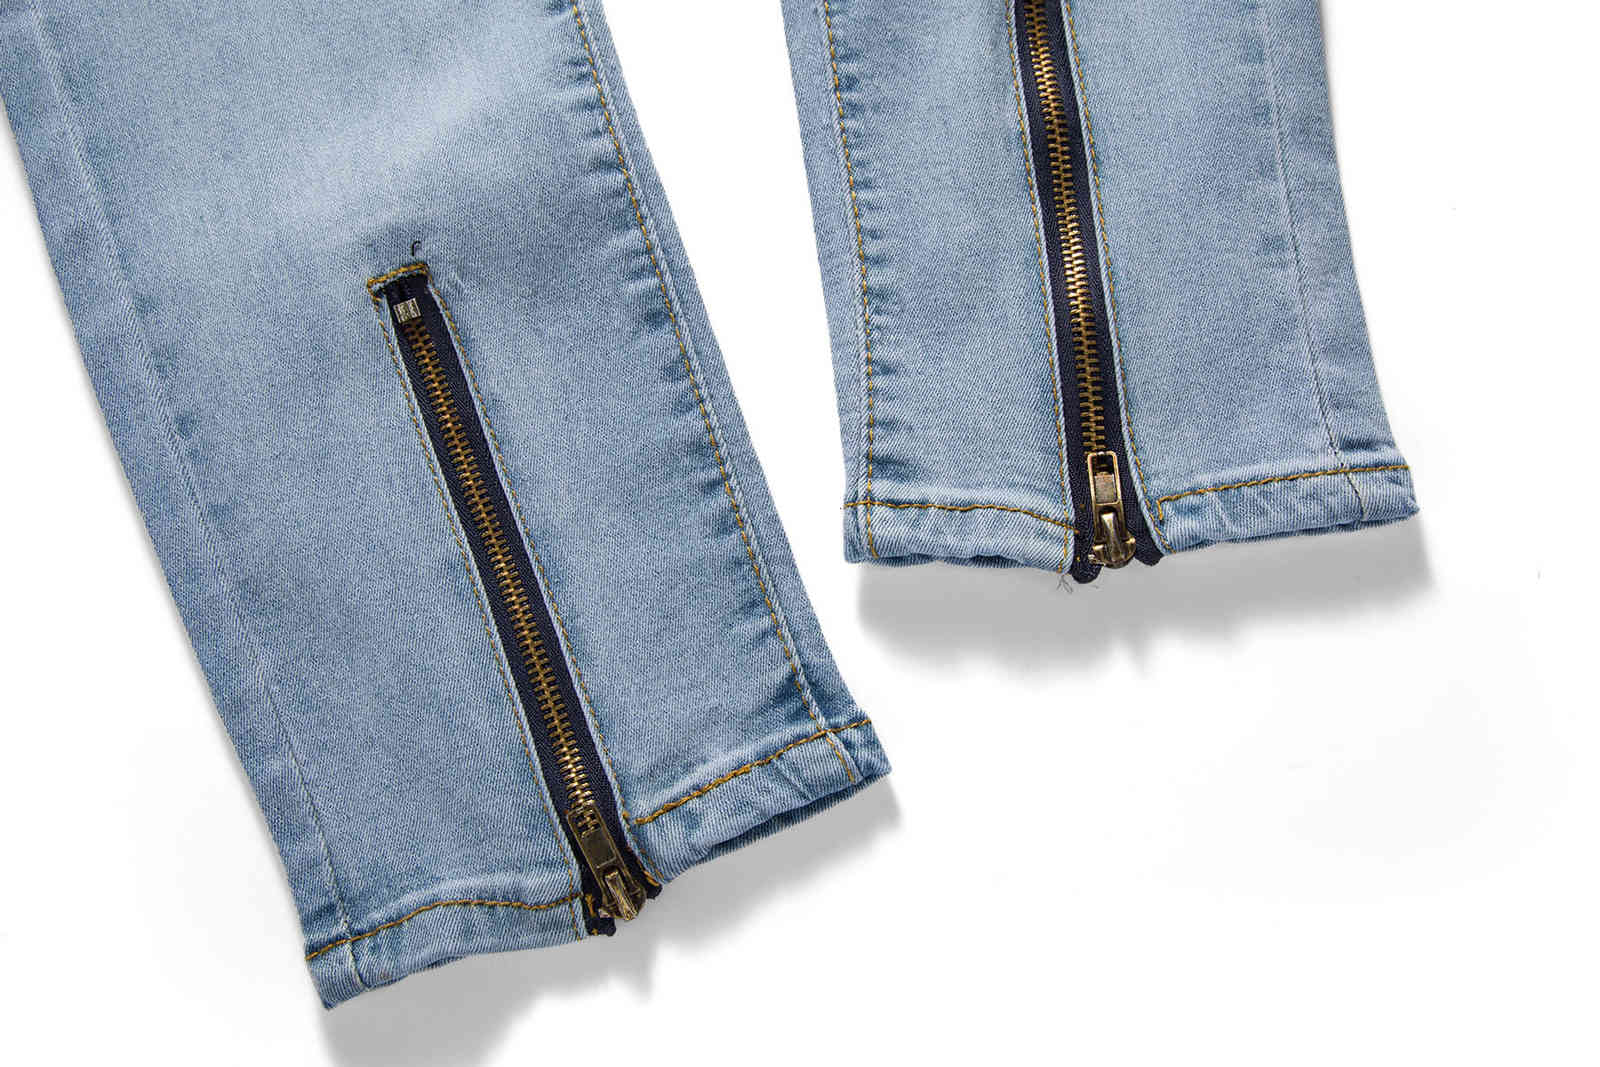 Summer 2019 New Fashion Casual Men Europe And The United States Trend Slim Fit With Broken Straight Tube Jeans